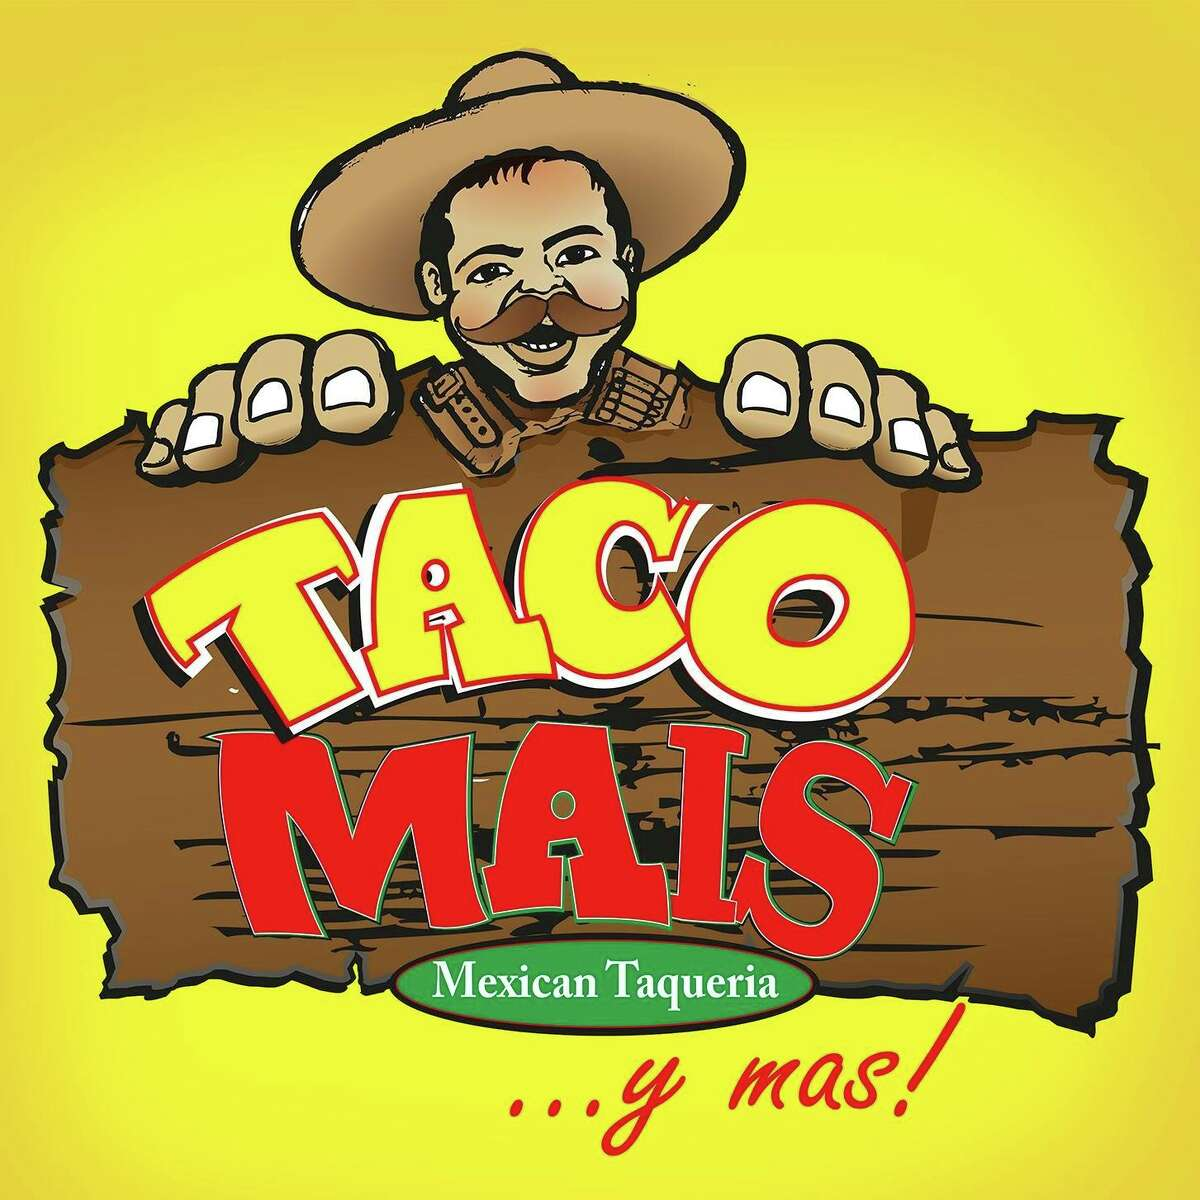 Taco Mais: 2620 N. Arkansas Date: 10/22/2019 Score: 89 Out of Compliance: Proper cold holding temperature. Food Separated & protected. No Evidence of Insect contamination, rodent/other animals. Wiping Cloths; properly used and stored. Proper Date Marking and disposition. Physical facilities installed, maintained, and clean.